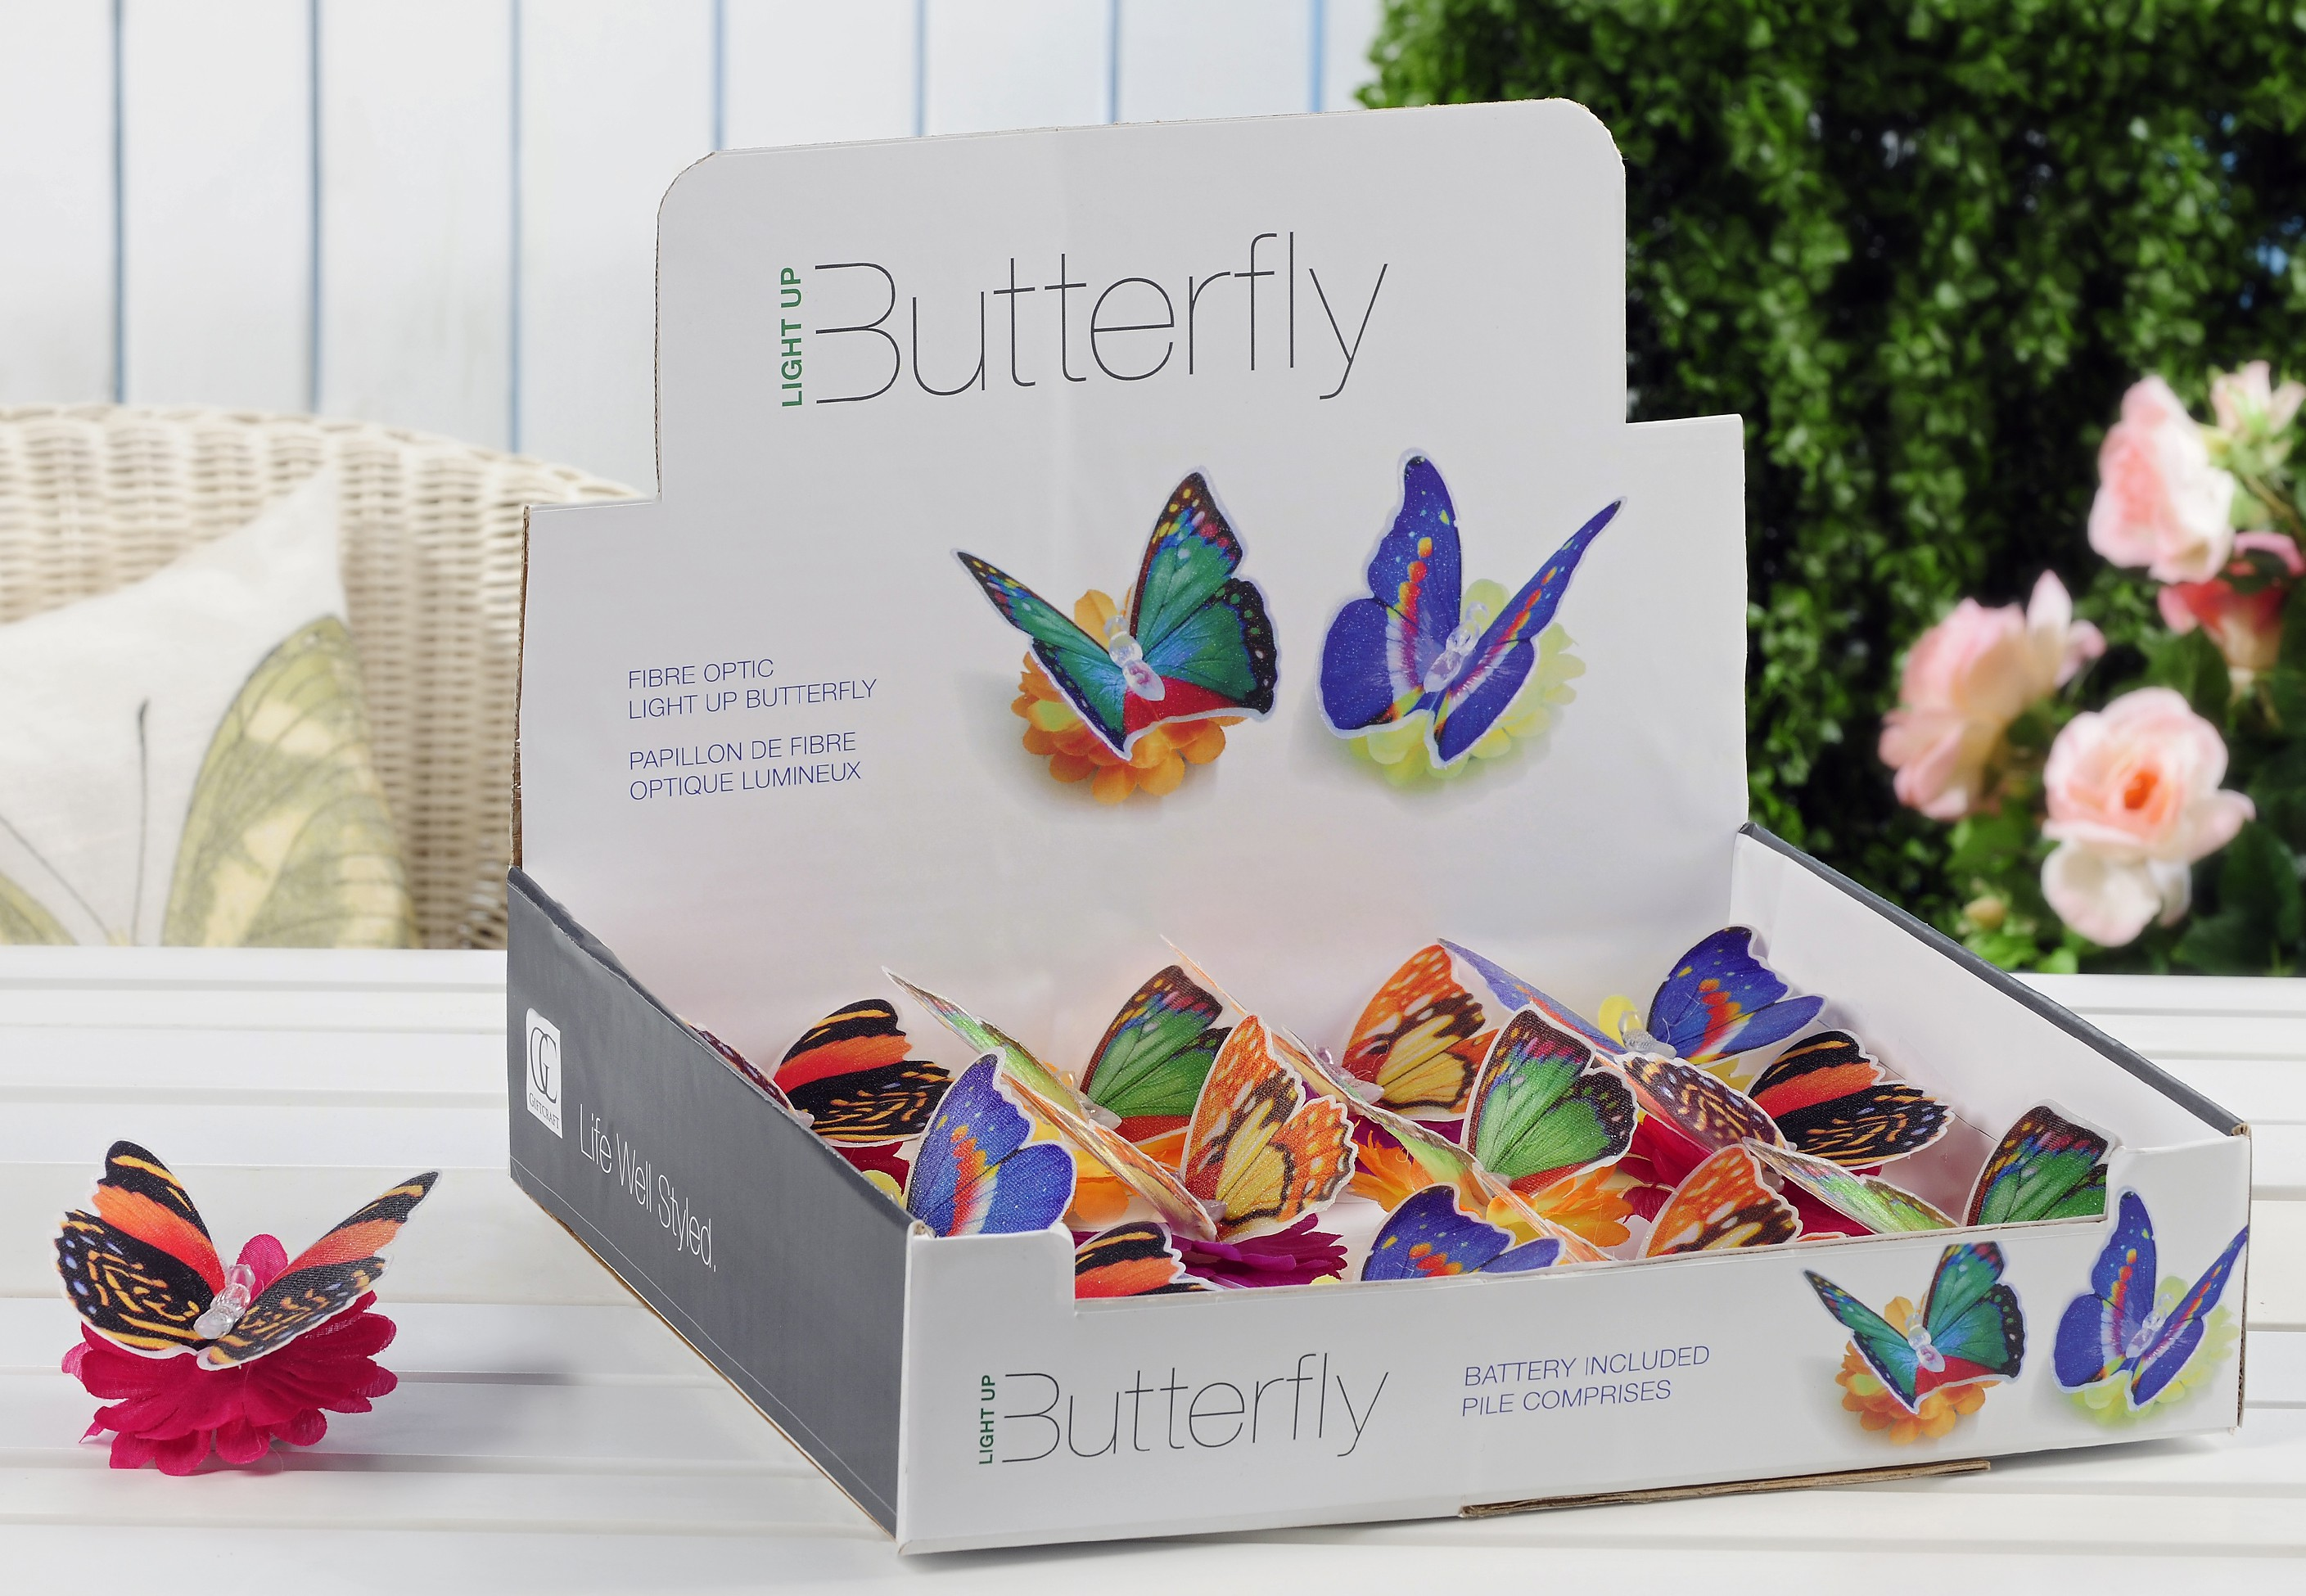 LED Lighted Butterfly Tealite with Display